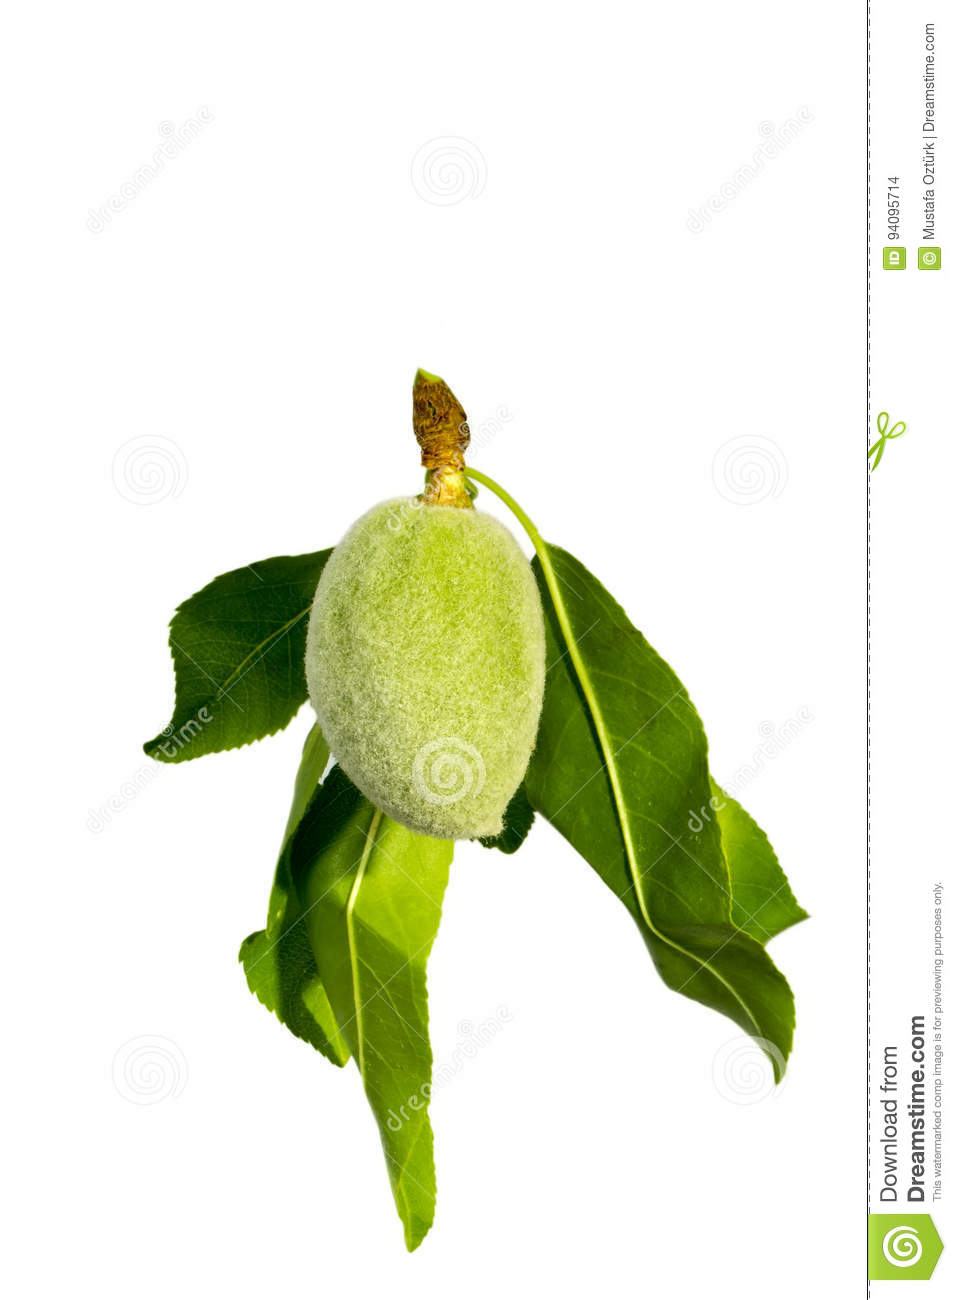 Green almond on a tree